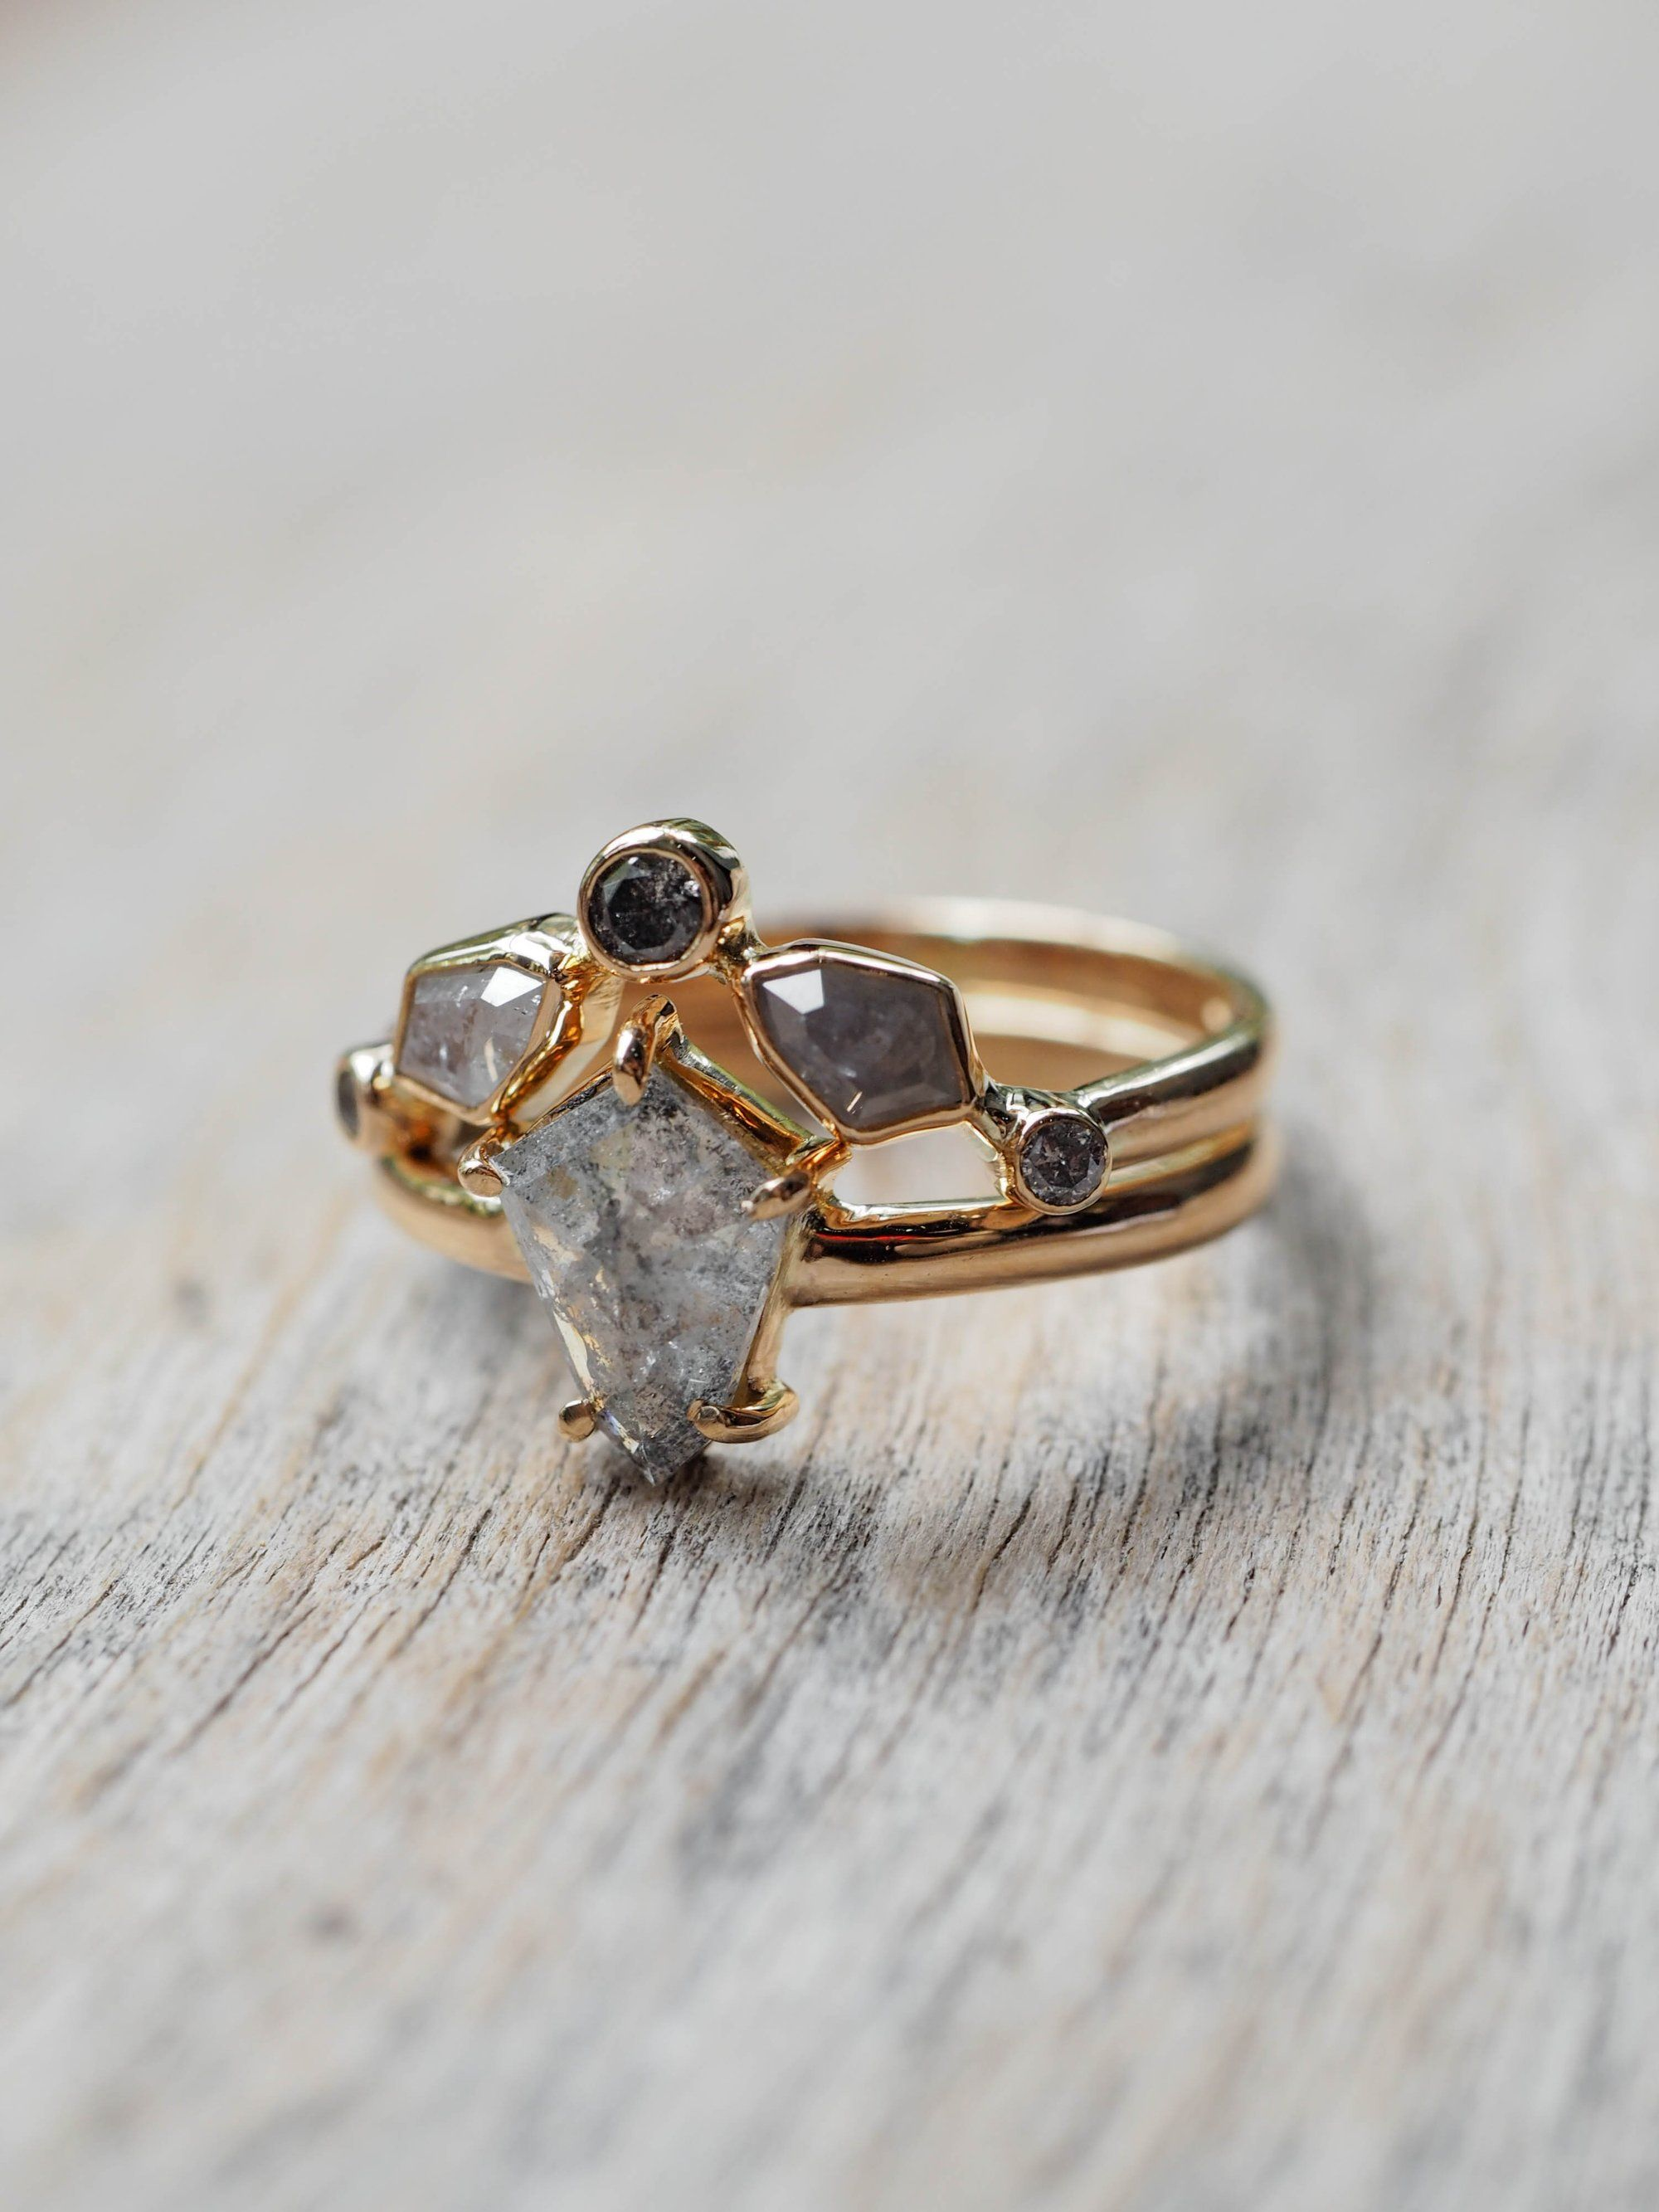 Shield Diamond Ring In Gold Build Your Own Her Beat Her Rhythm Is Your Strength She Rat Tat Tats Through Life All Flamenco D And Dolled Up She Lets You B